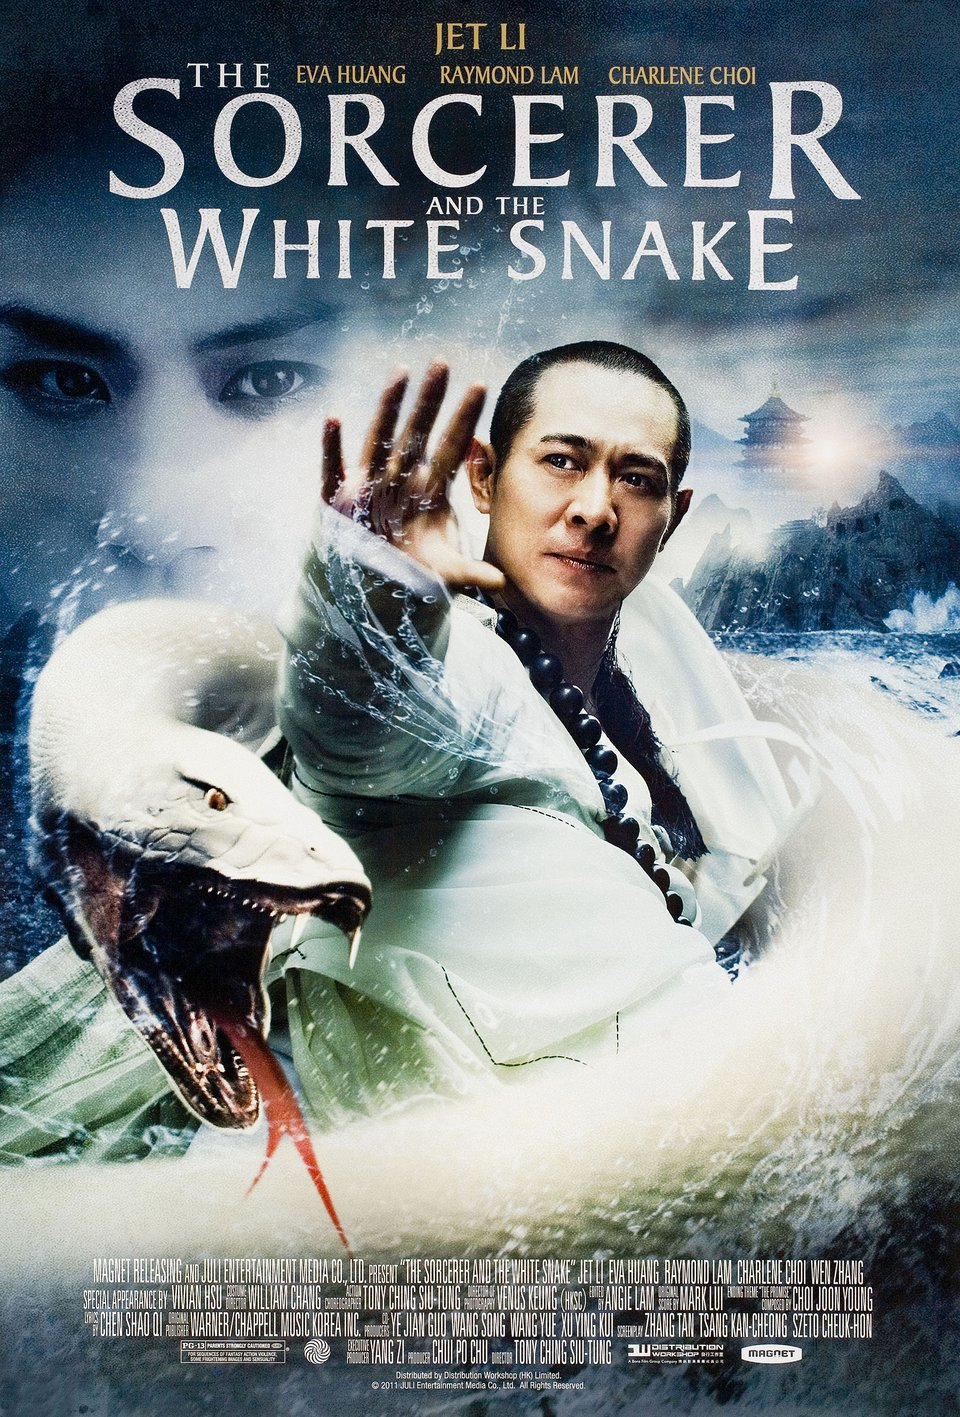 The Sorcerer and the White Snake 2011 U.S. One Sheet Poster